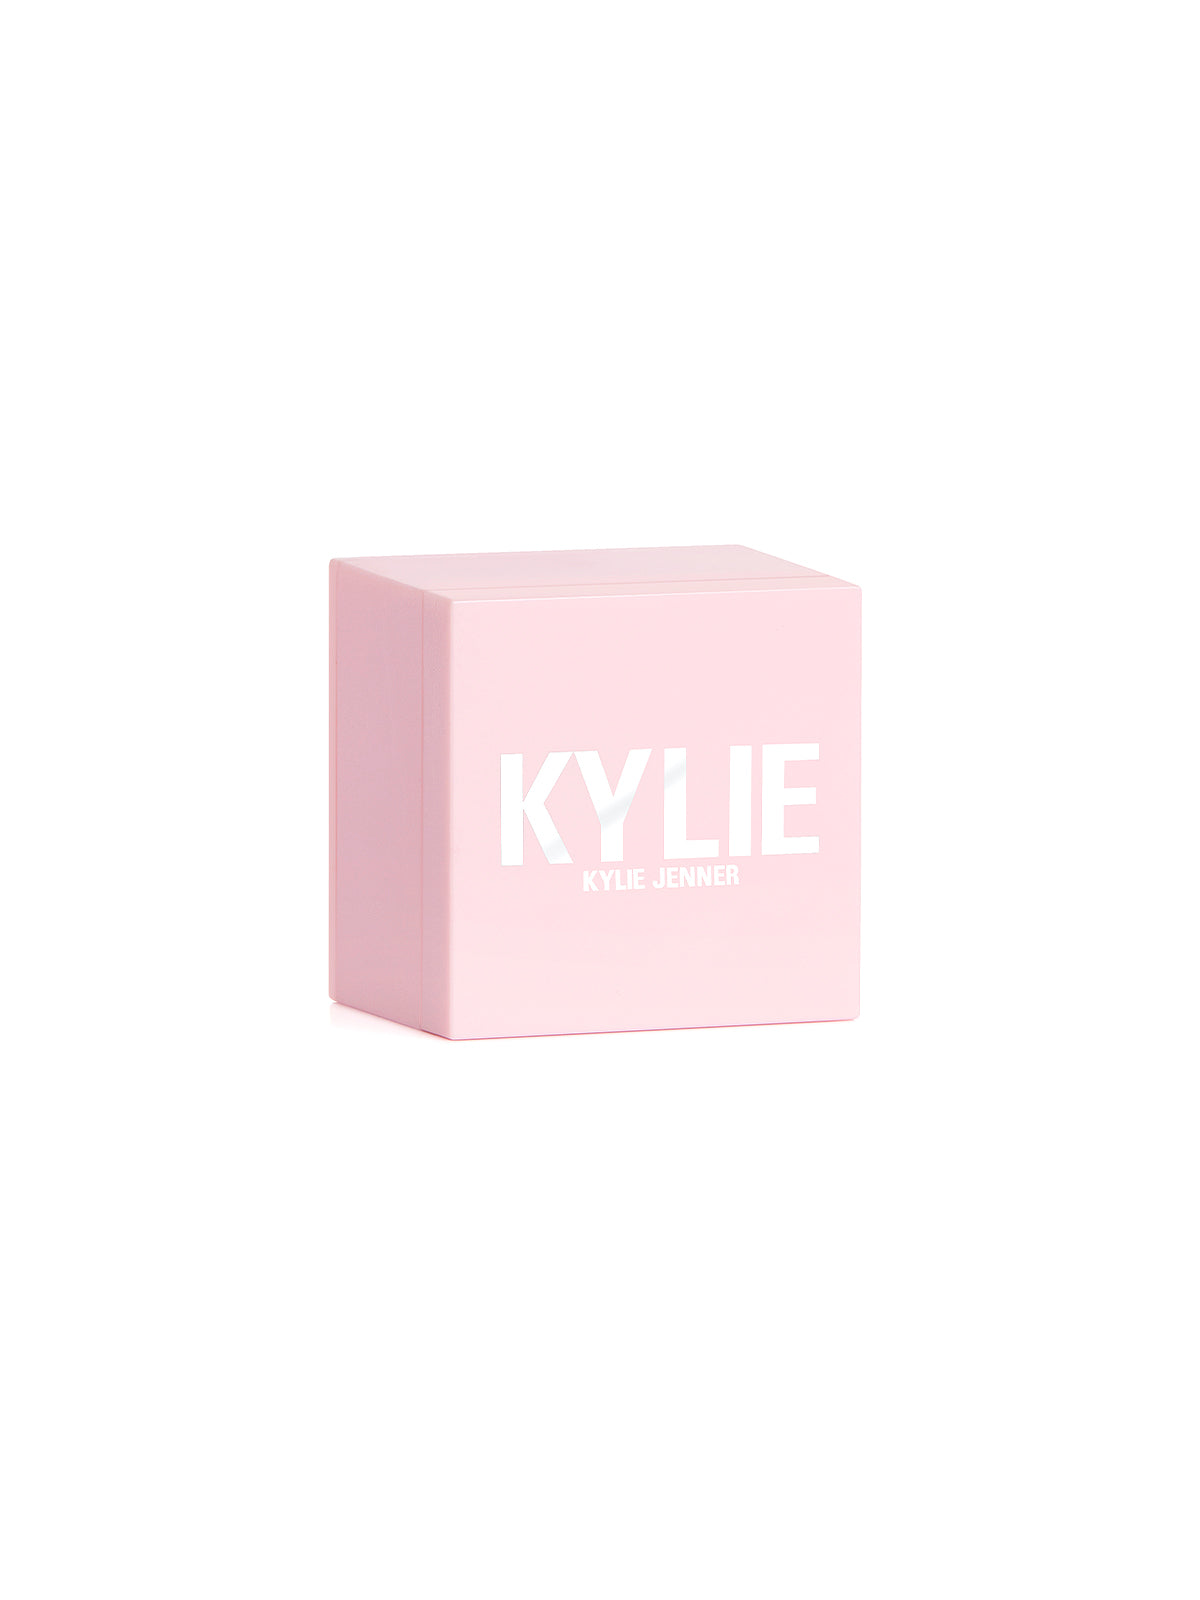 KYLIE | Pencil Sharpener - Kylie Cosmetics by Kylie Jenner